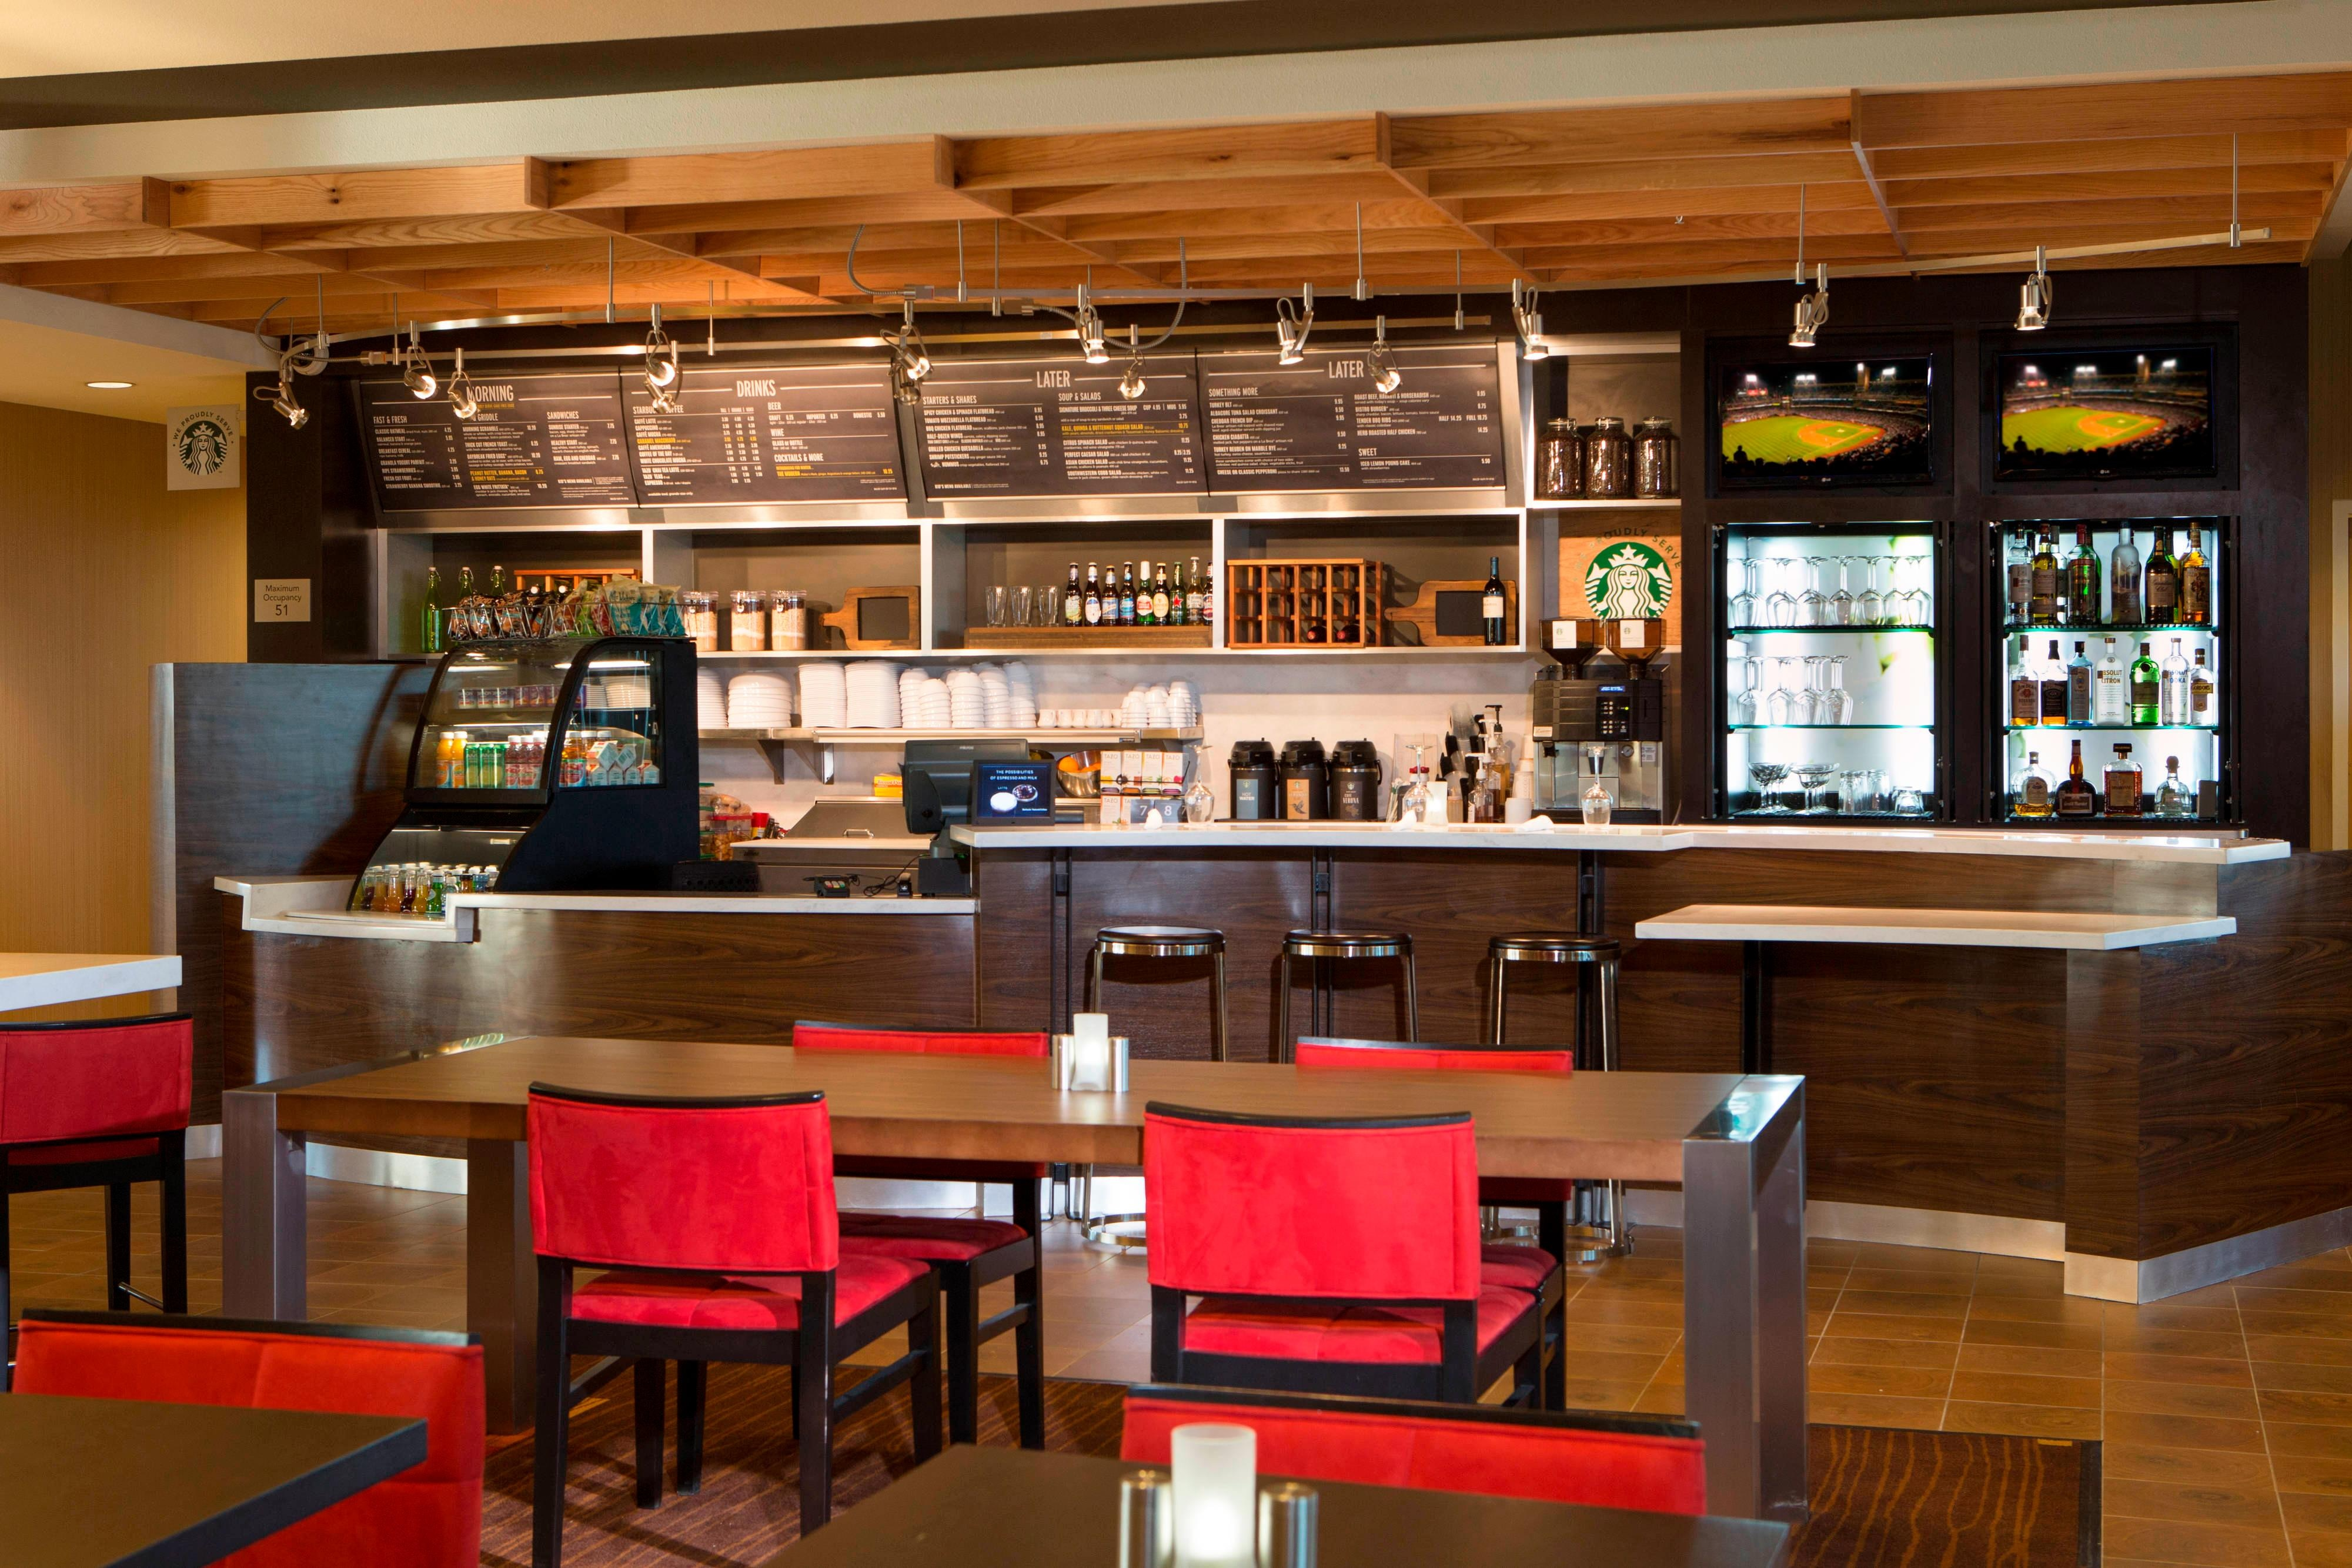 Midlothian Hotel Bistro Restaurant and Seating